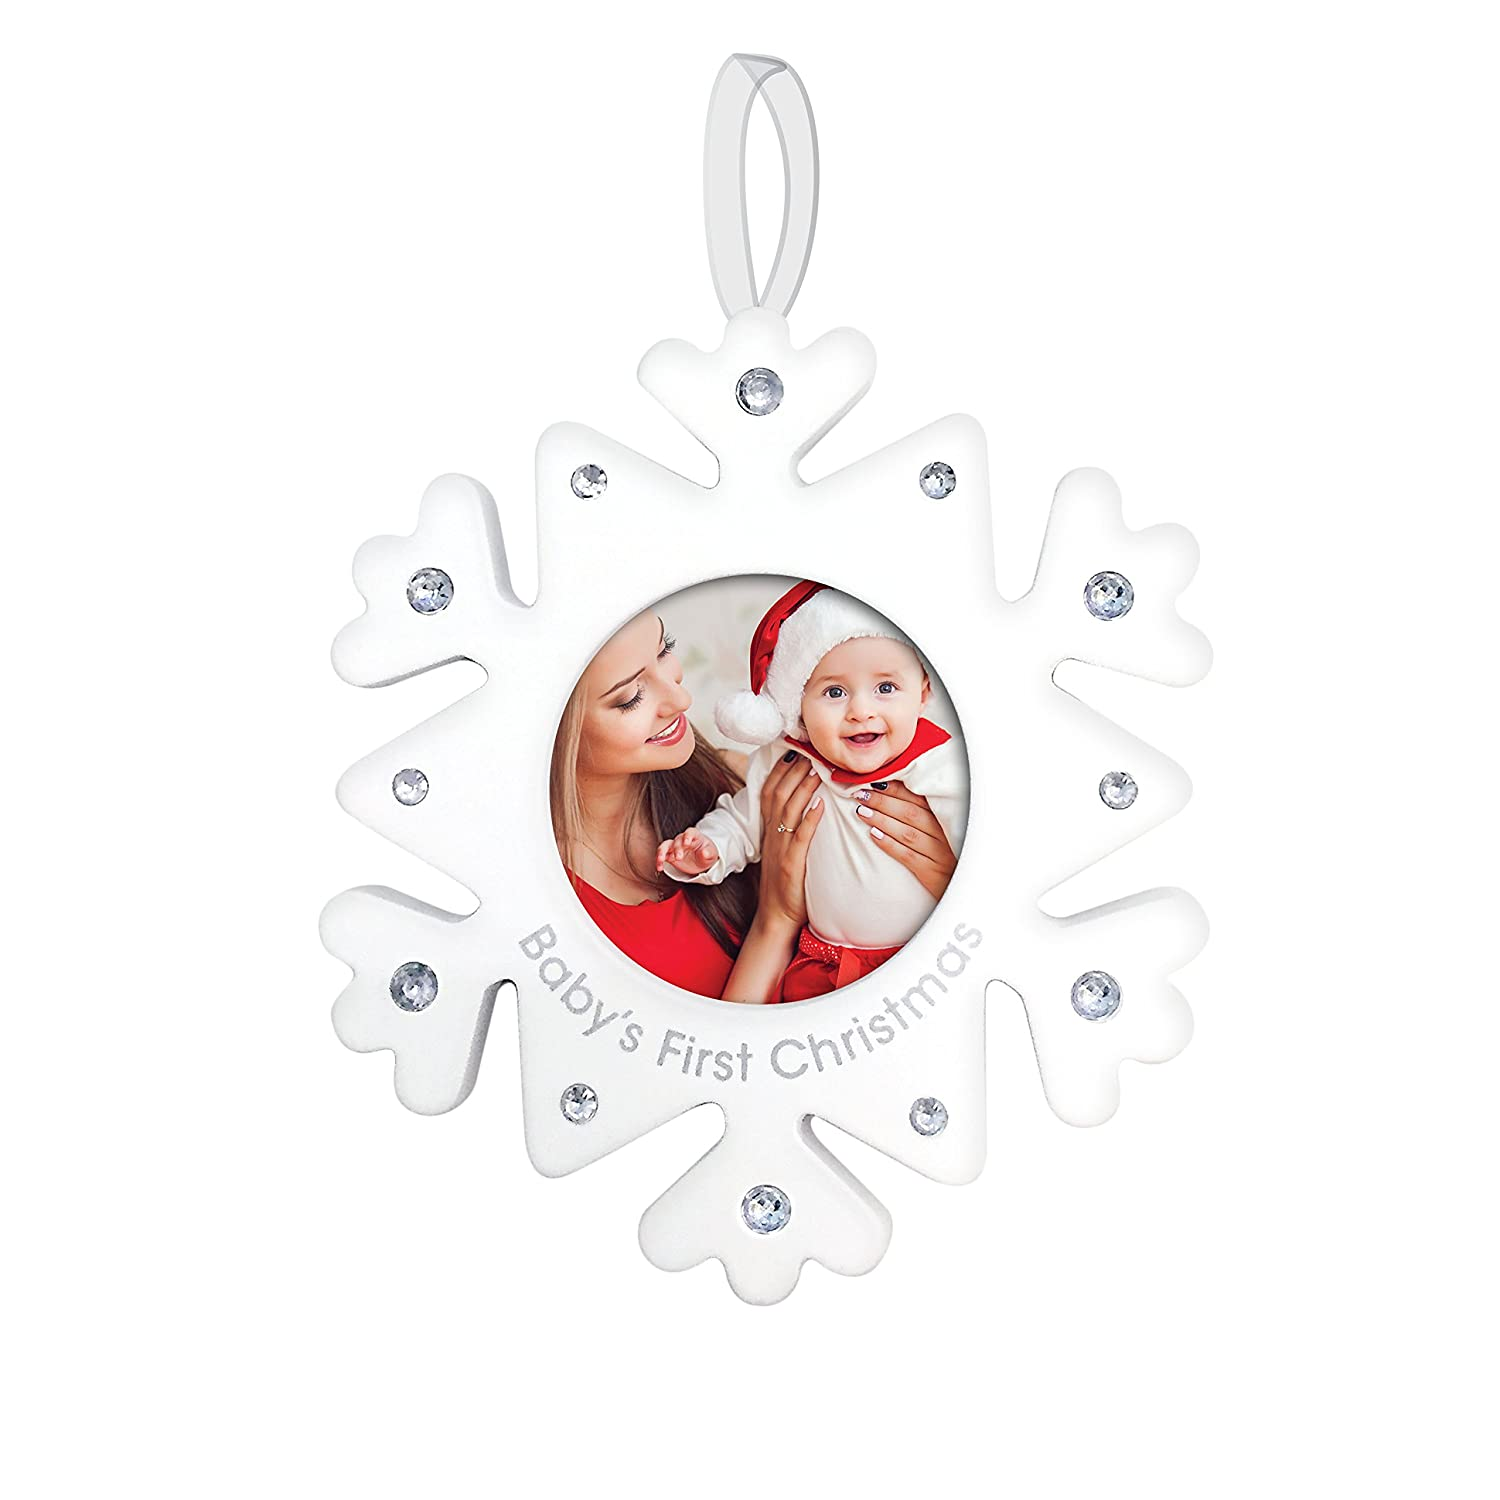 Tiny Ideas Rhinestone Snowflake Holiday Ornament, Baby's First Christmas Baby' s First Christmas Pearhead Inc 98043